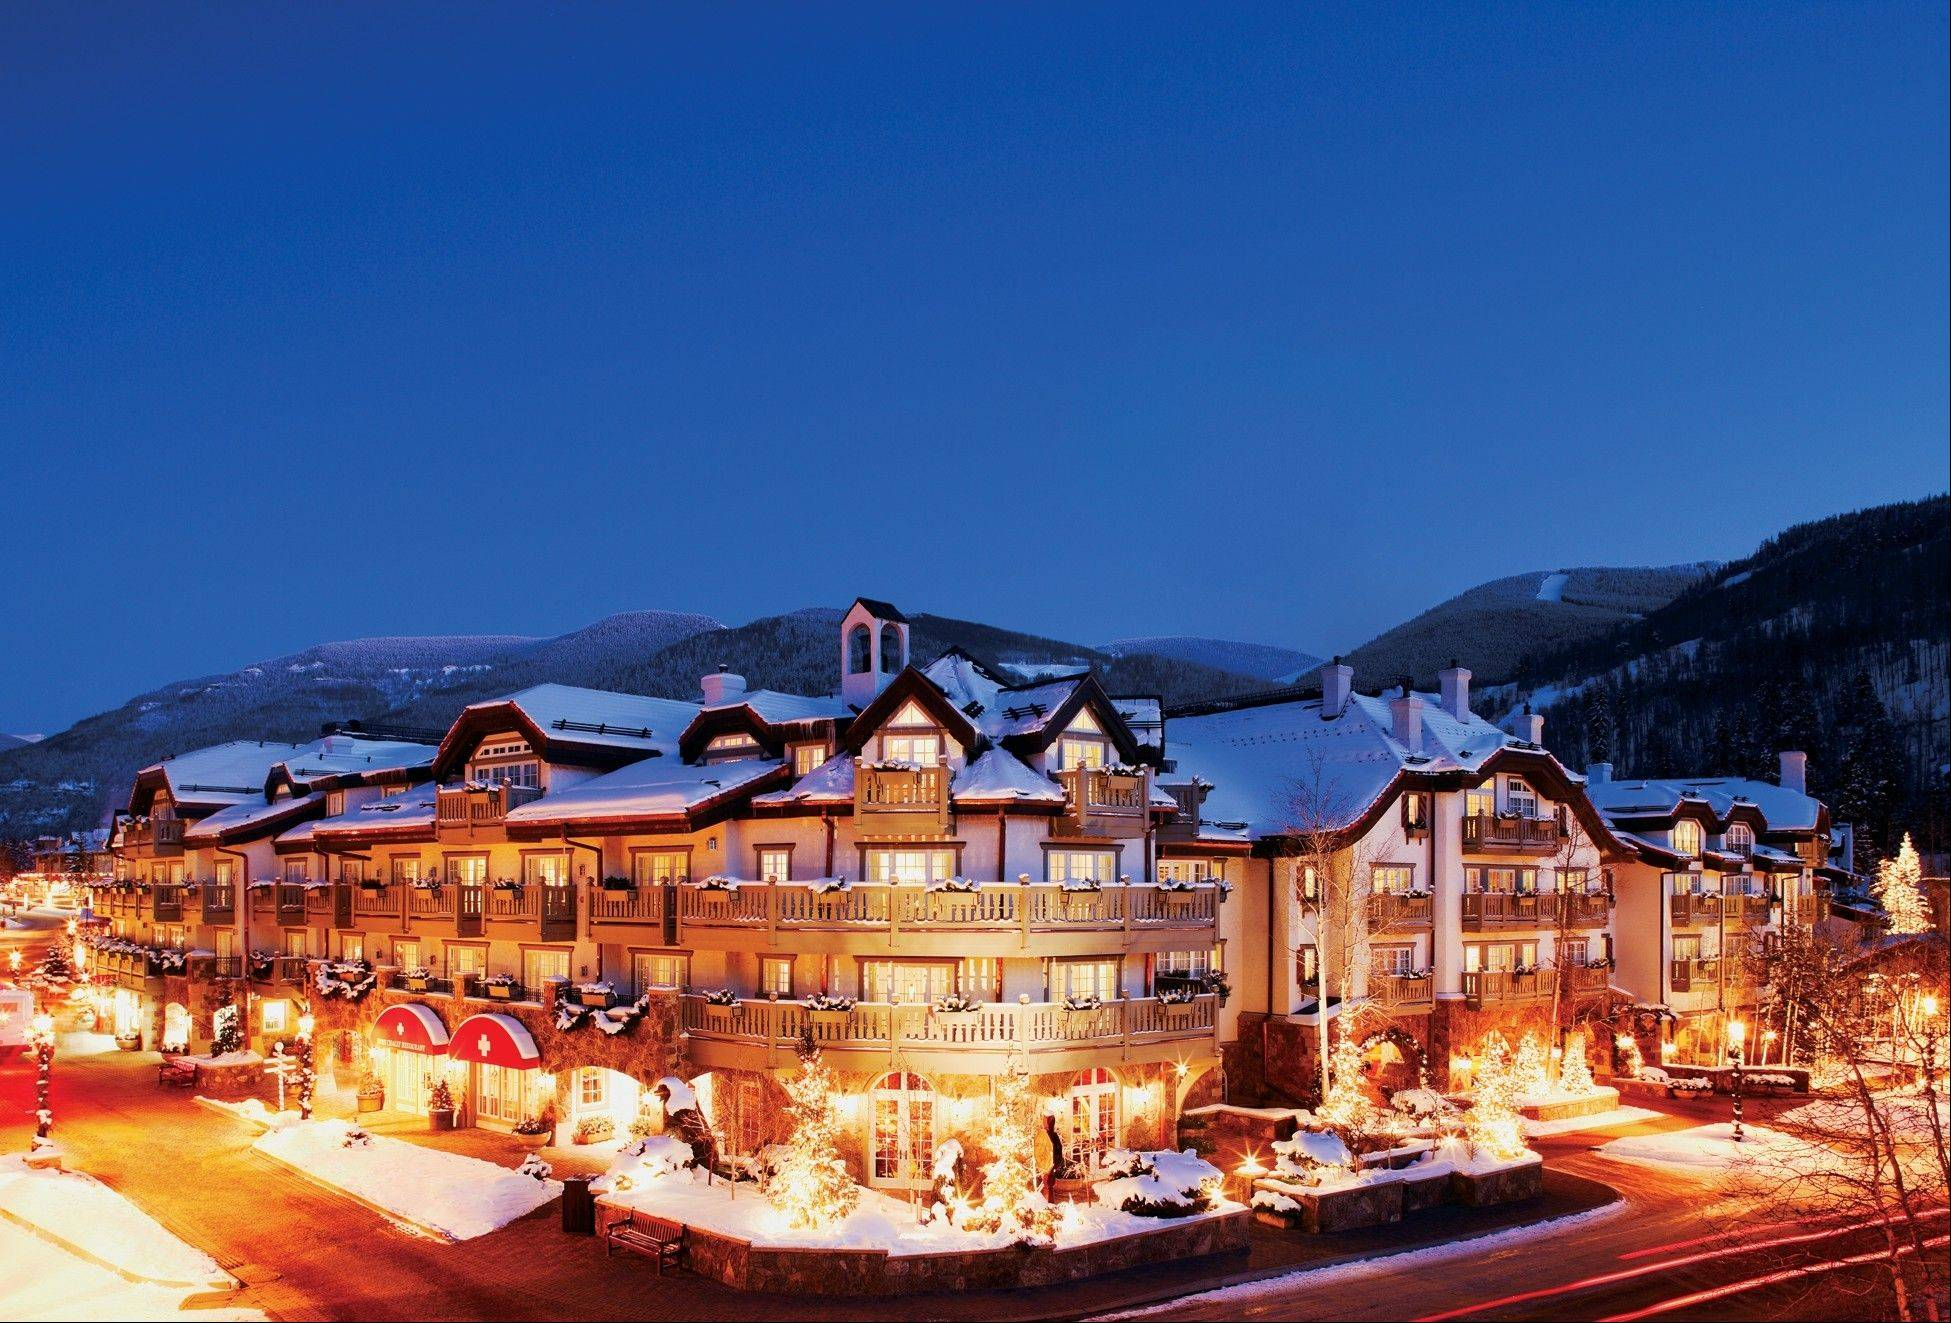 Family-owned resorts, such as Sonnenalp in Vail, Colo., strive to provide a personal touch in an era when many resorts are owned by large corporations.